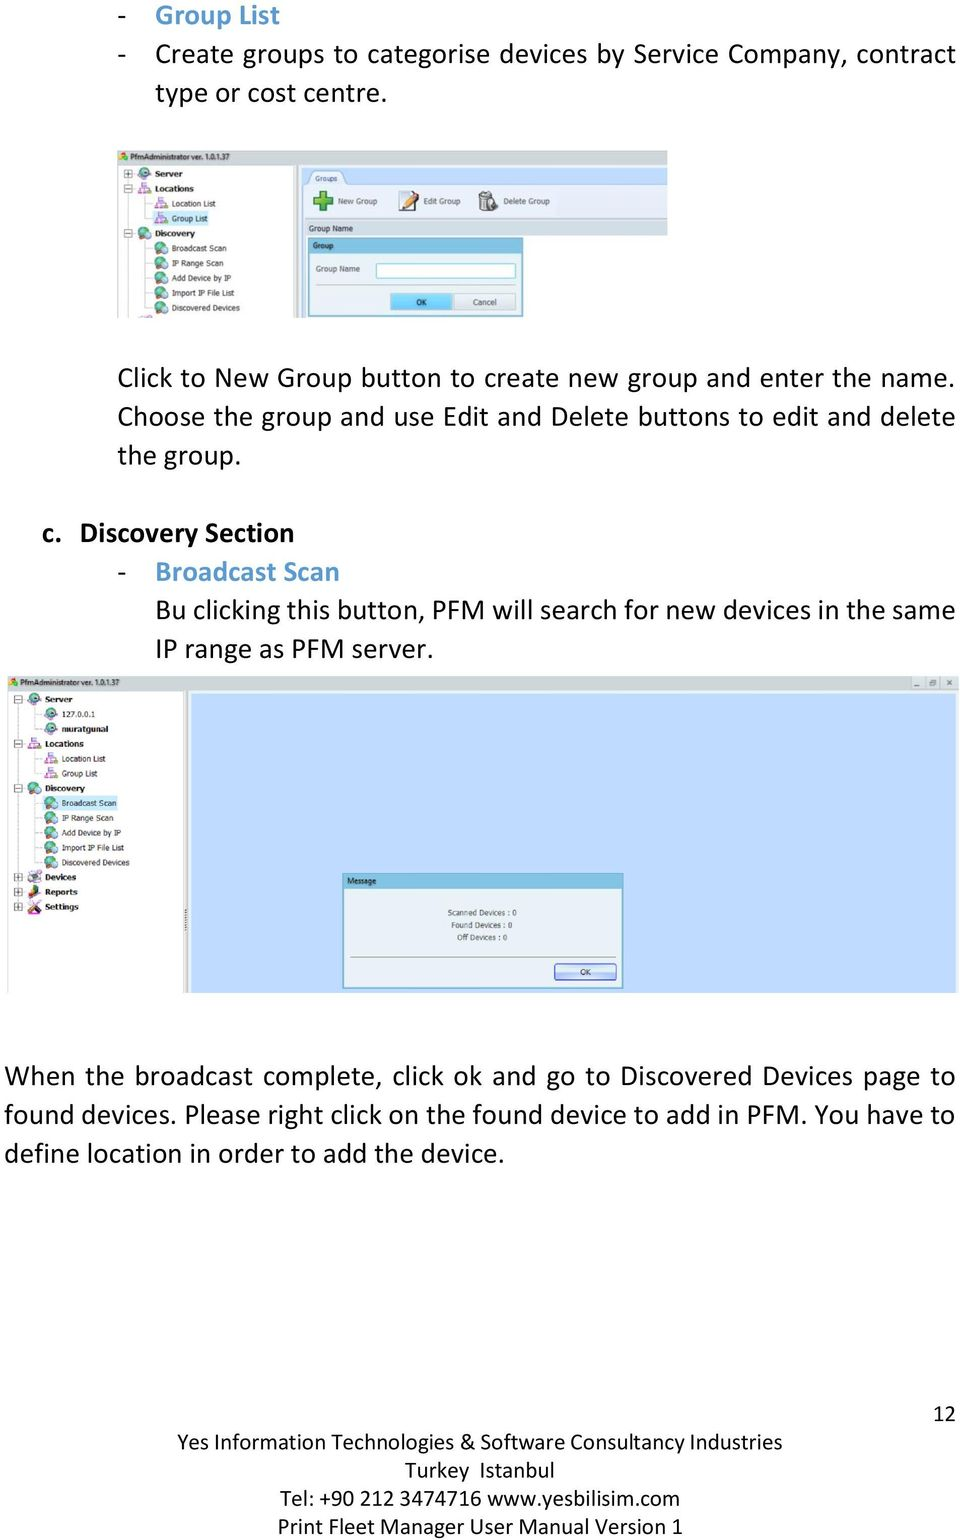 c. Discovery Section - Broadcast Scan Bu clicking this button, PFM will search for new devices in the same IP range as PFM server.